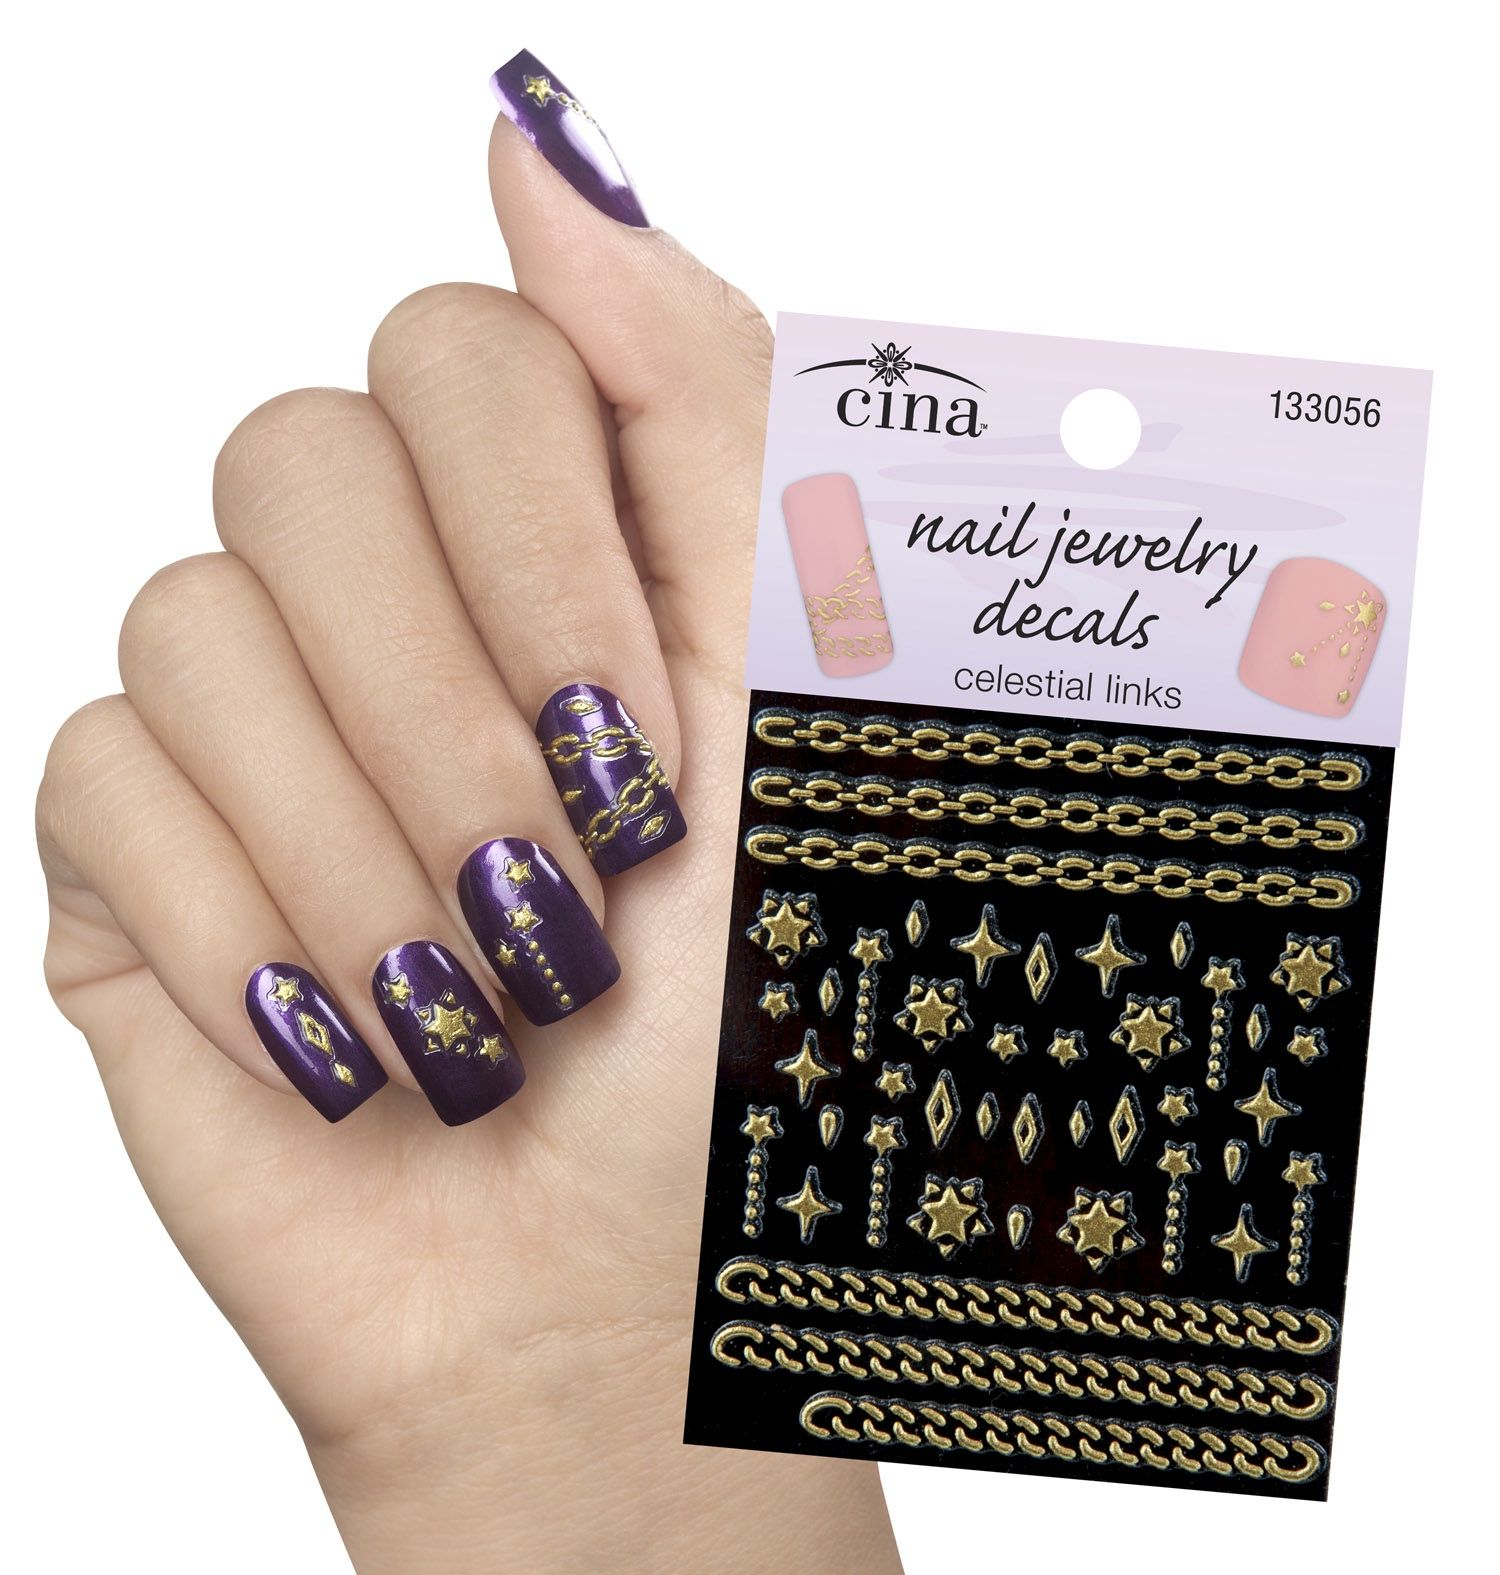 Cina Nail Jewelry Decals Perfect For Galaxy Nails Galaxy Nails Nail Jewelry Nails News